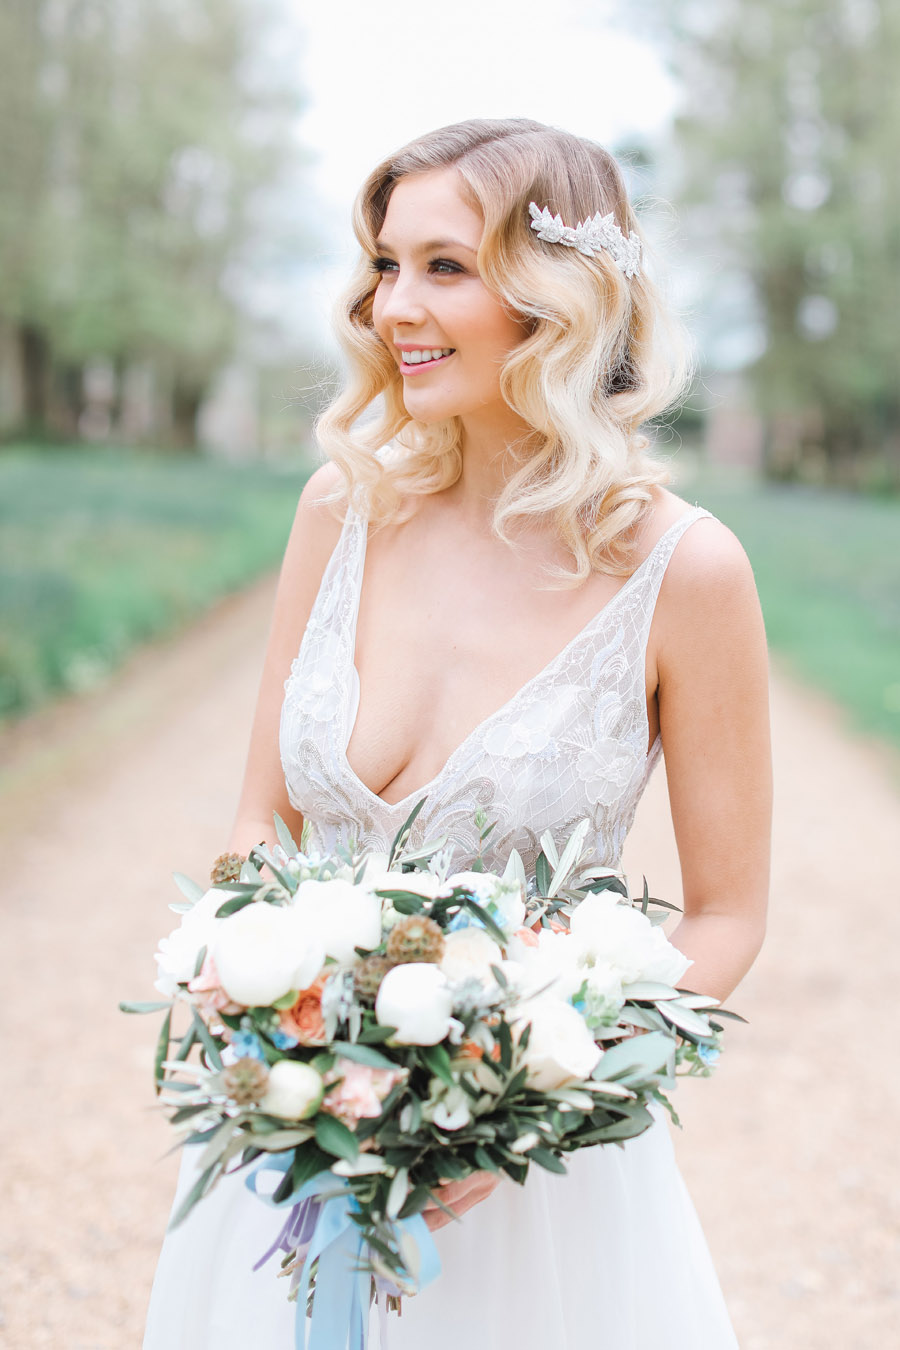 Romantic wedding ideas from Hale Park, photo by Charlotte Wise Photography (27)